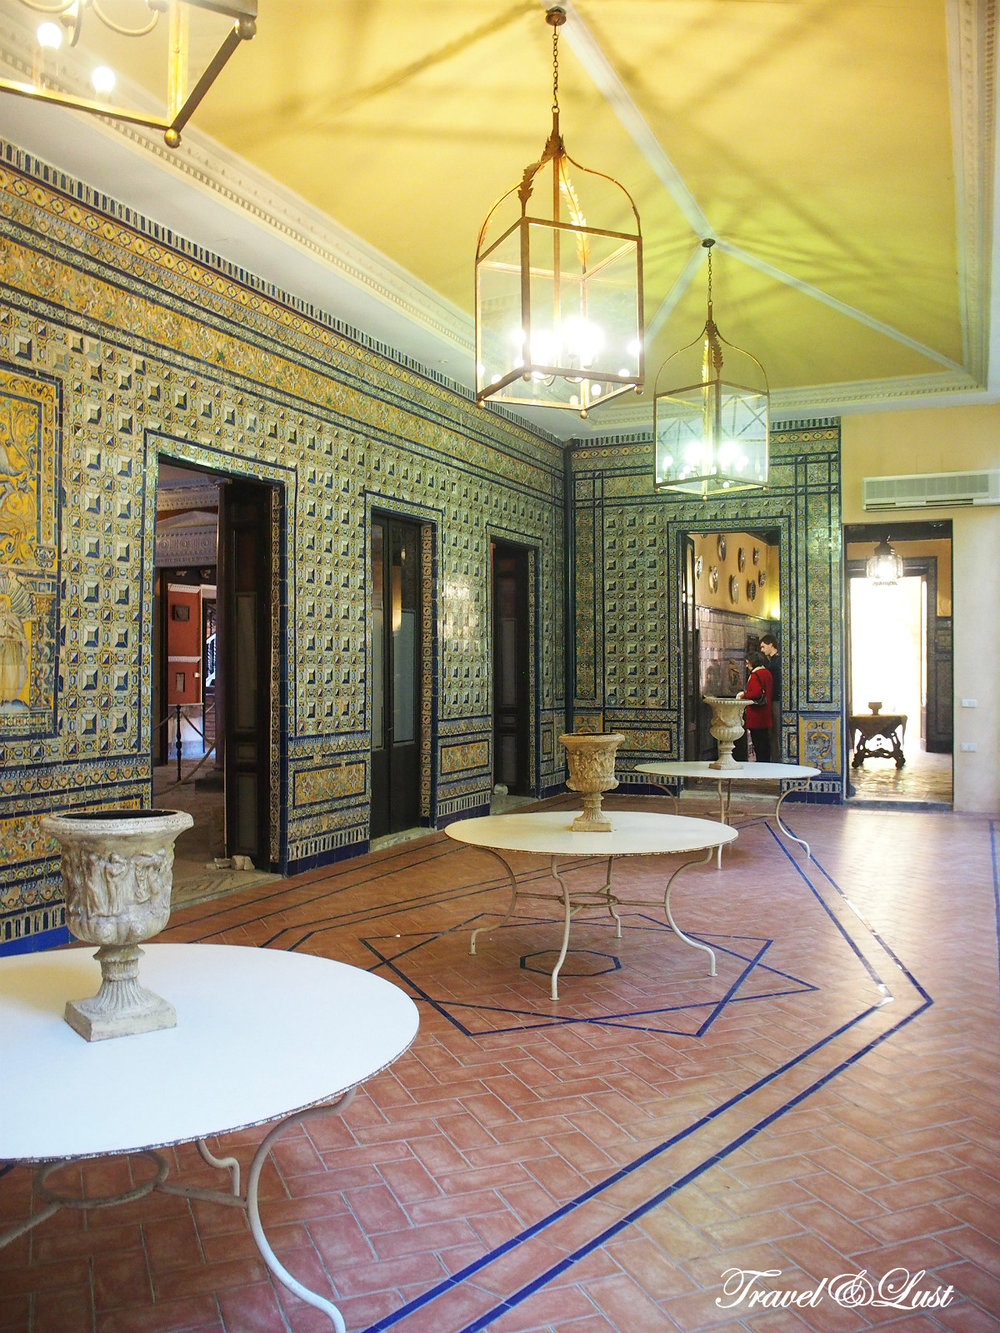 The Palacio de la Condesa de Lebrija is open everyday, unless otherwise noted, and is located in Calle Cuna nº 8.